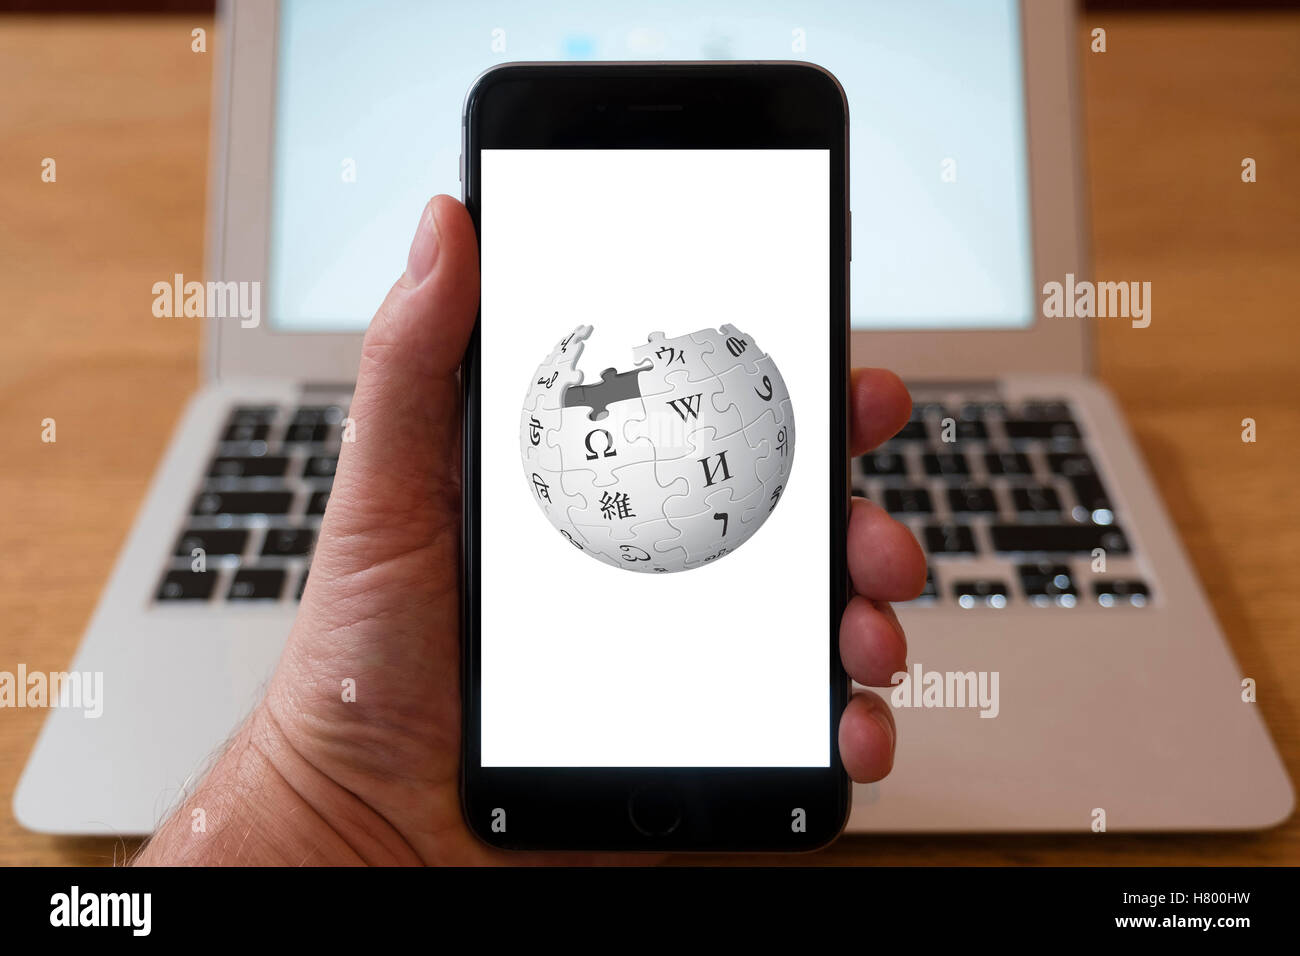 Using iPhone smartphone to display logo of Wikipedia the online encyclopaedia - Stock Image